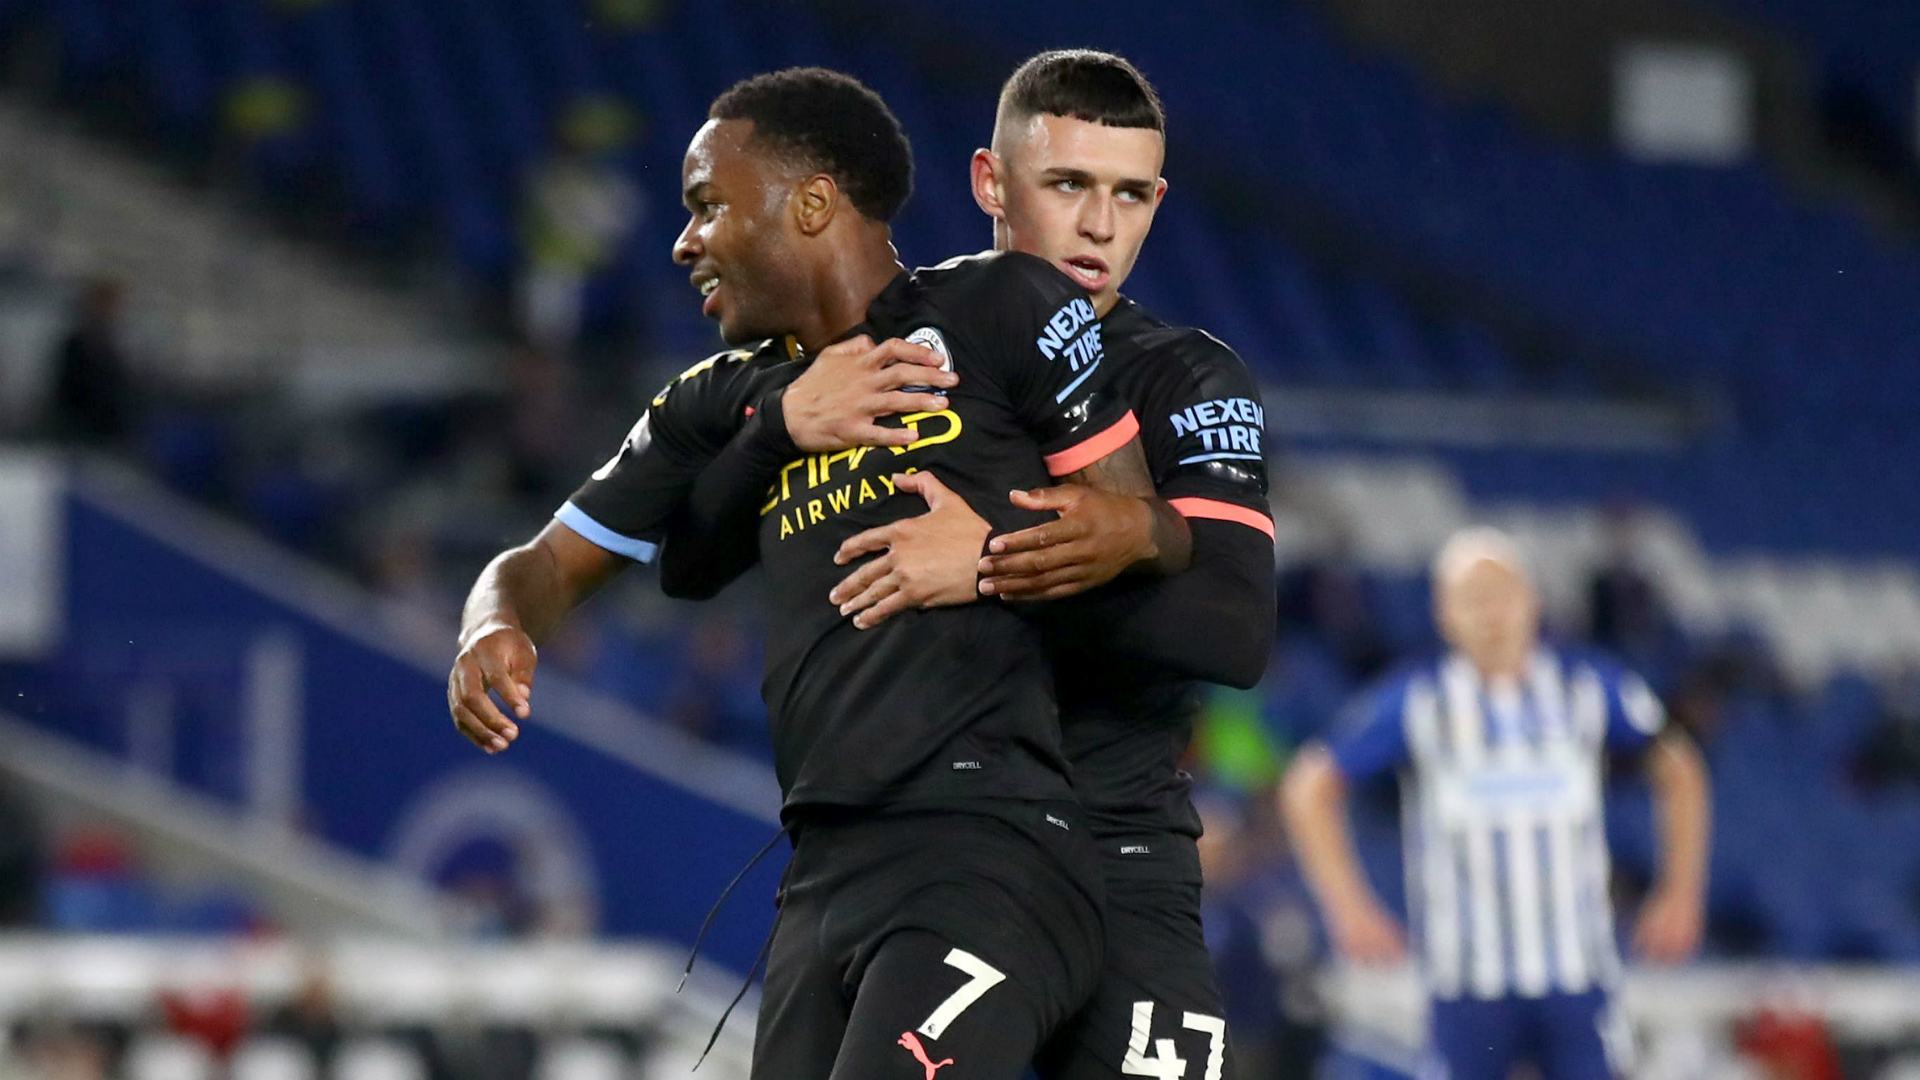 Brighton and Hove Albion 0-5 Manchester City: Sterling hits hat-trick as visitors run riot